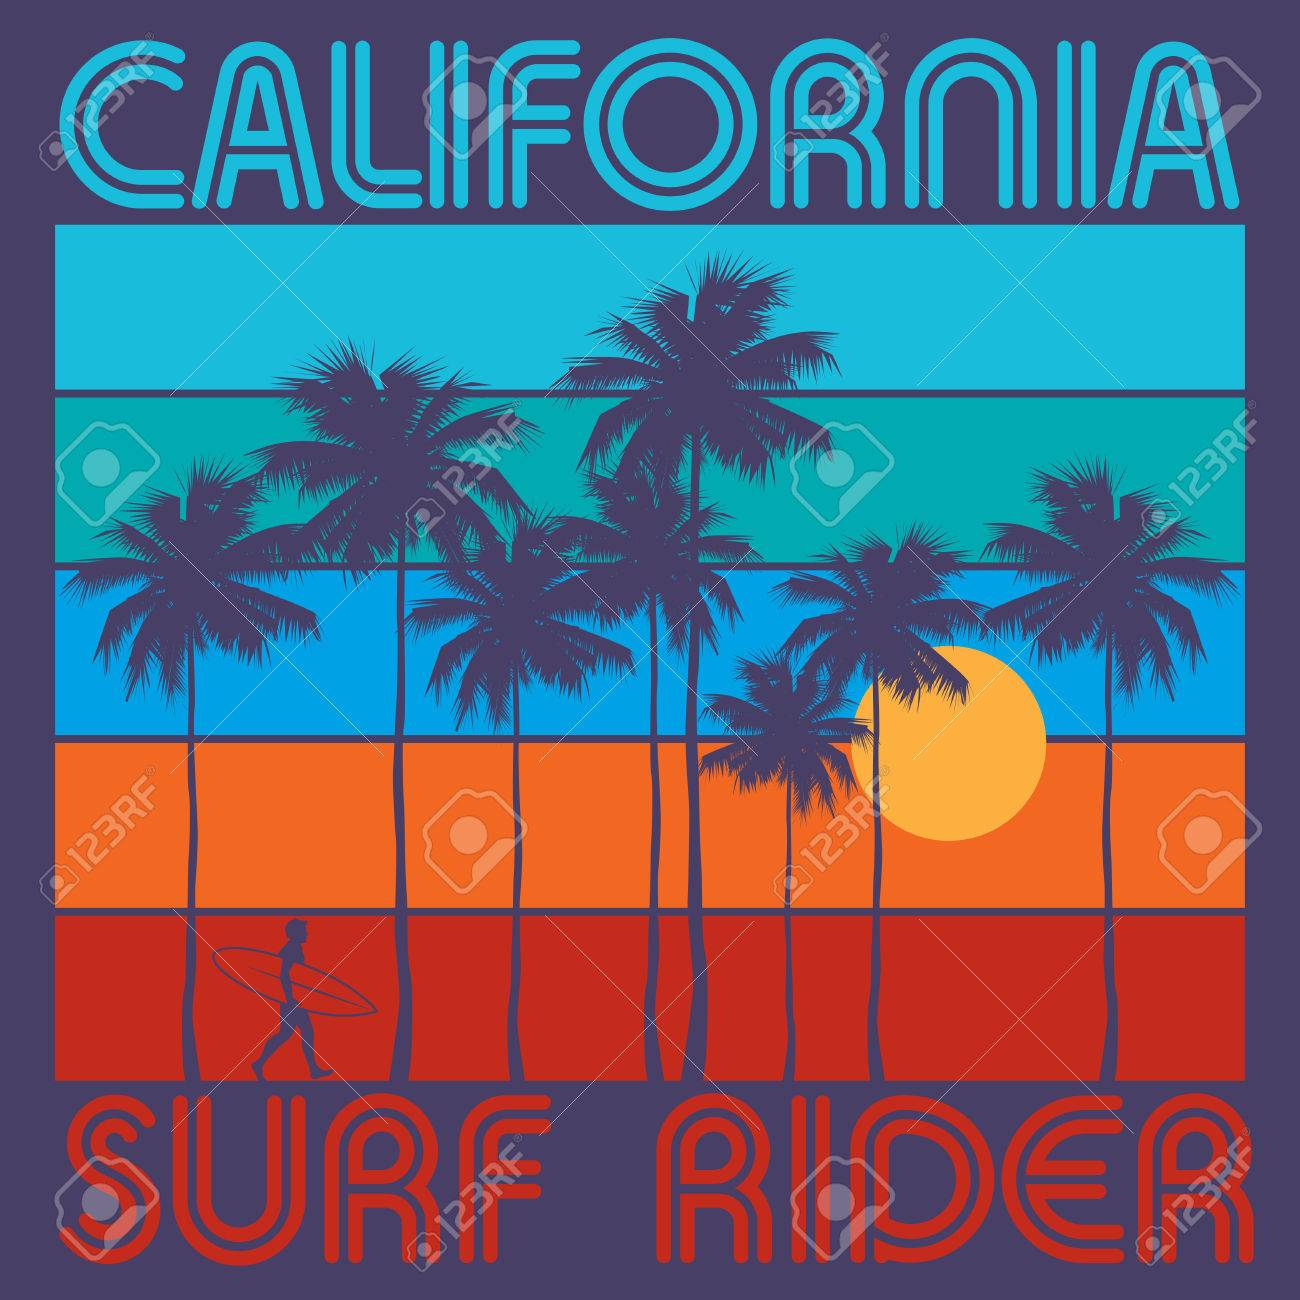 7ae1489c Theme of surfing with text California, Surf Rider. Typography, t-shirt  graphics